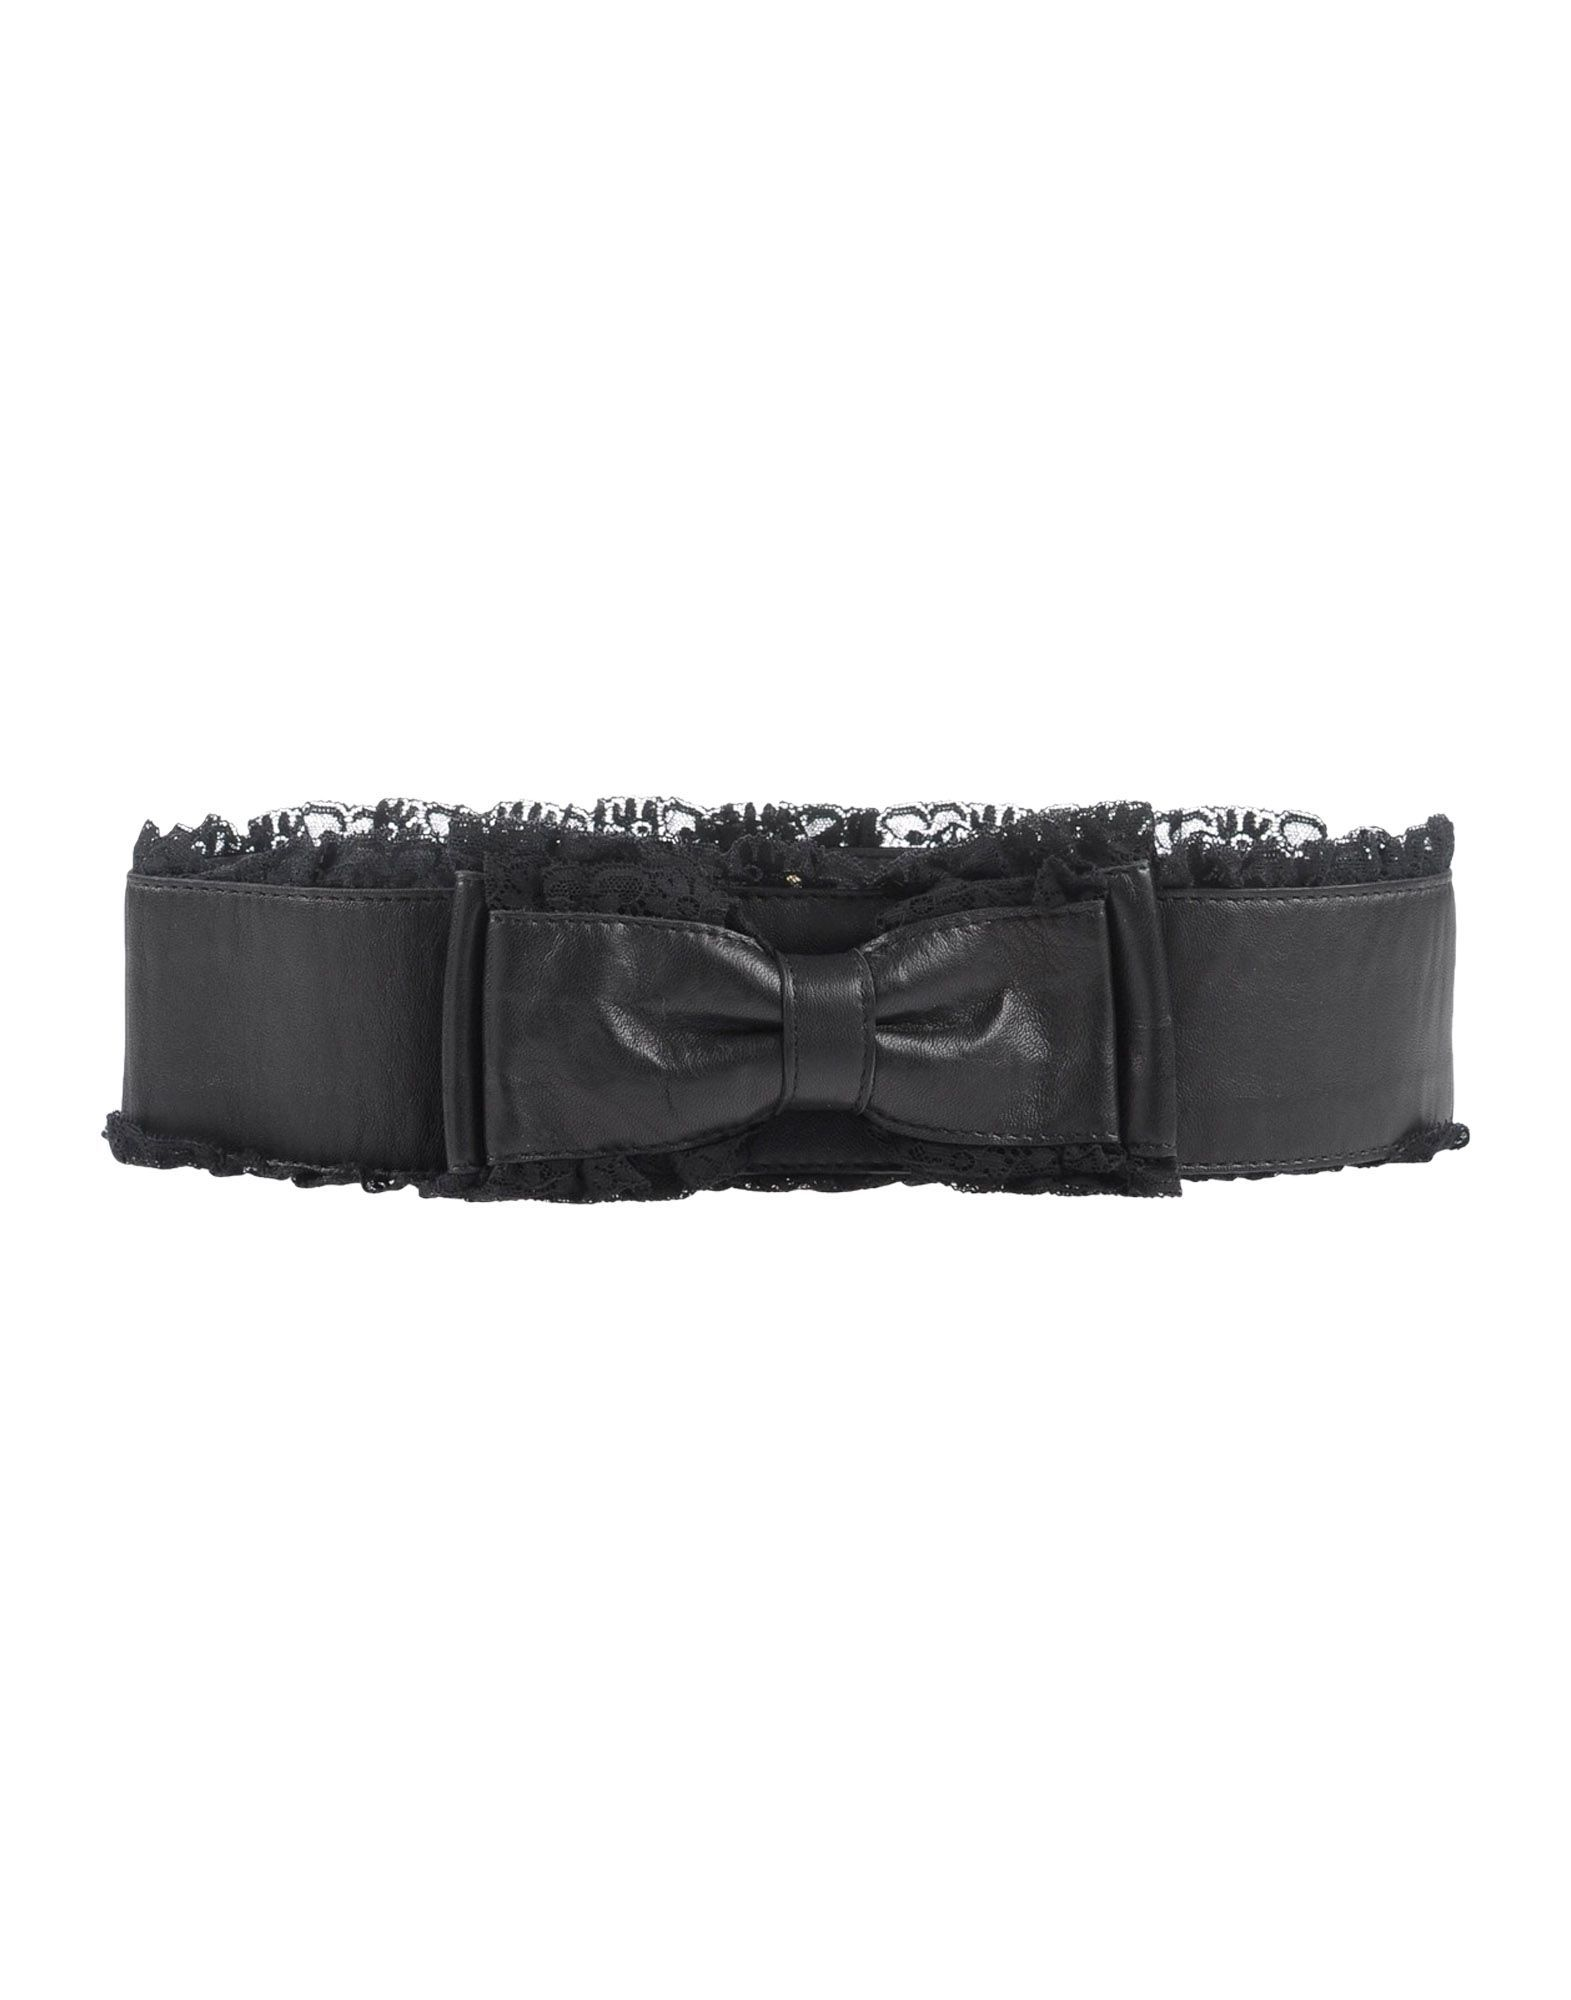 Small Leather Goods - Belts OBLIQUE CREATIONS ItF7Q5